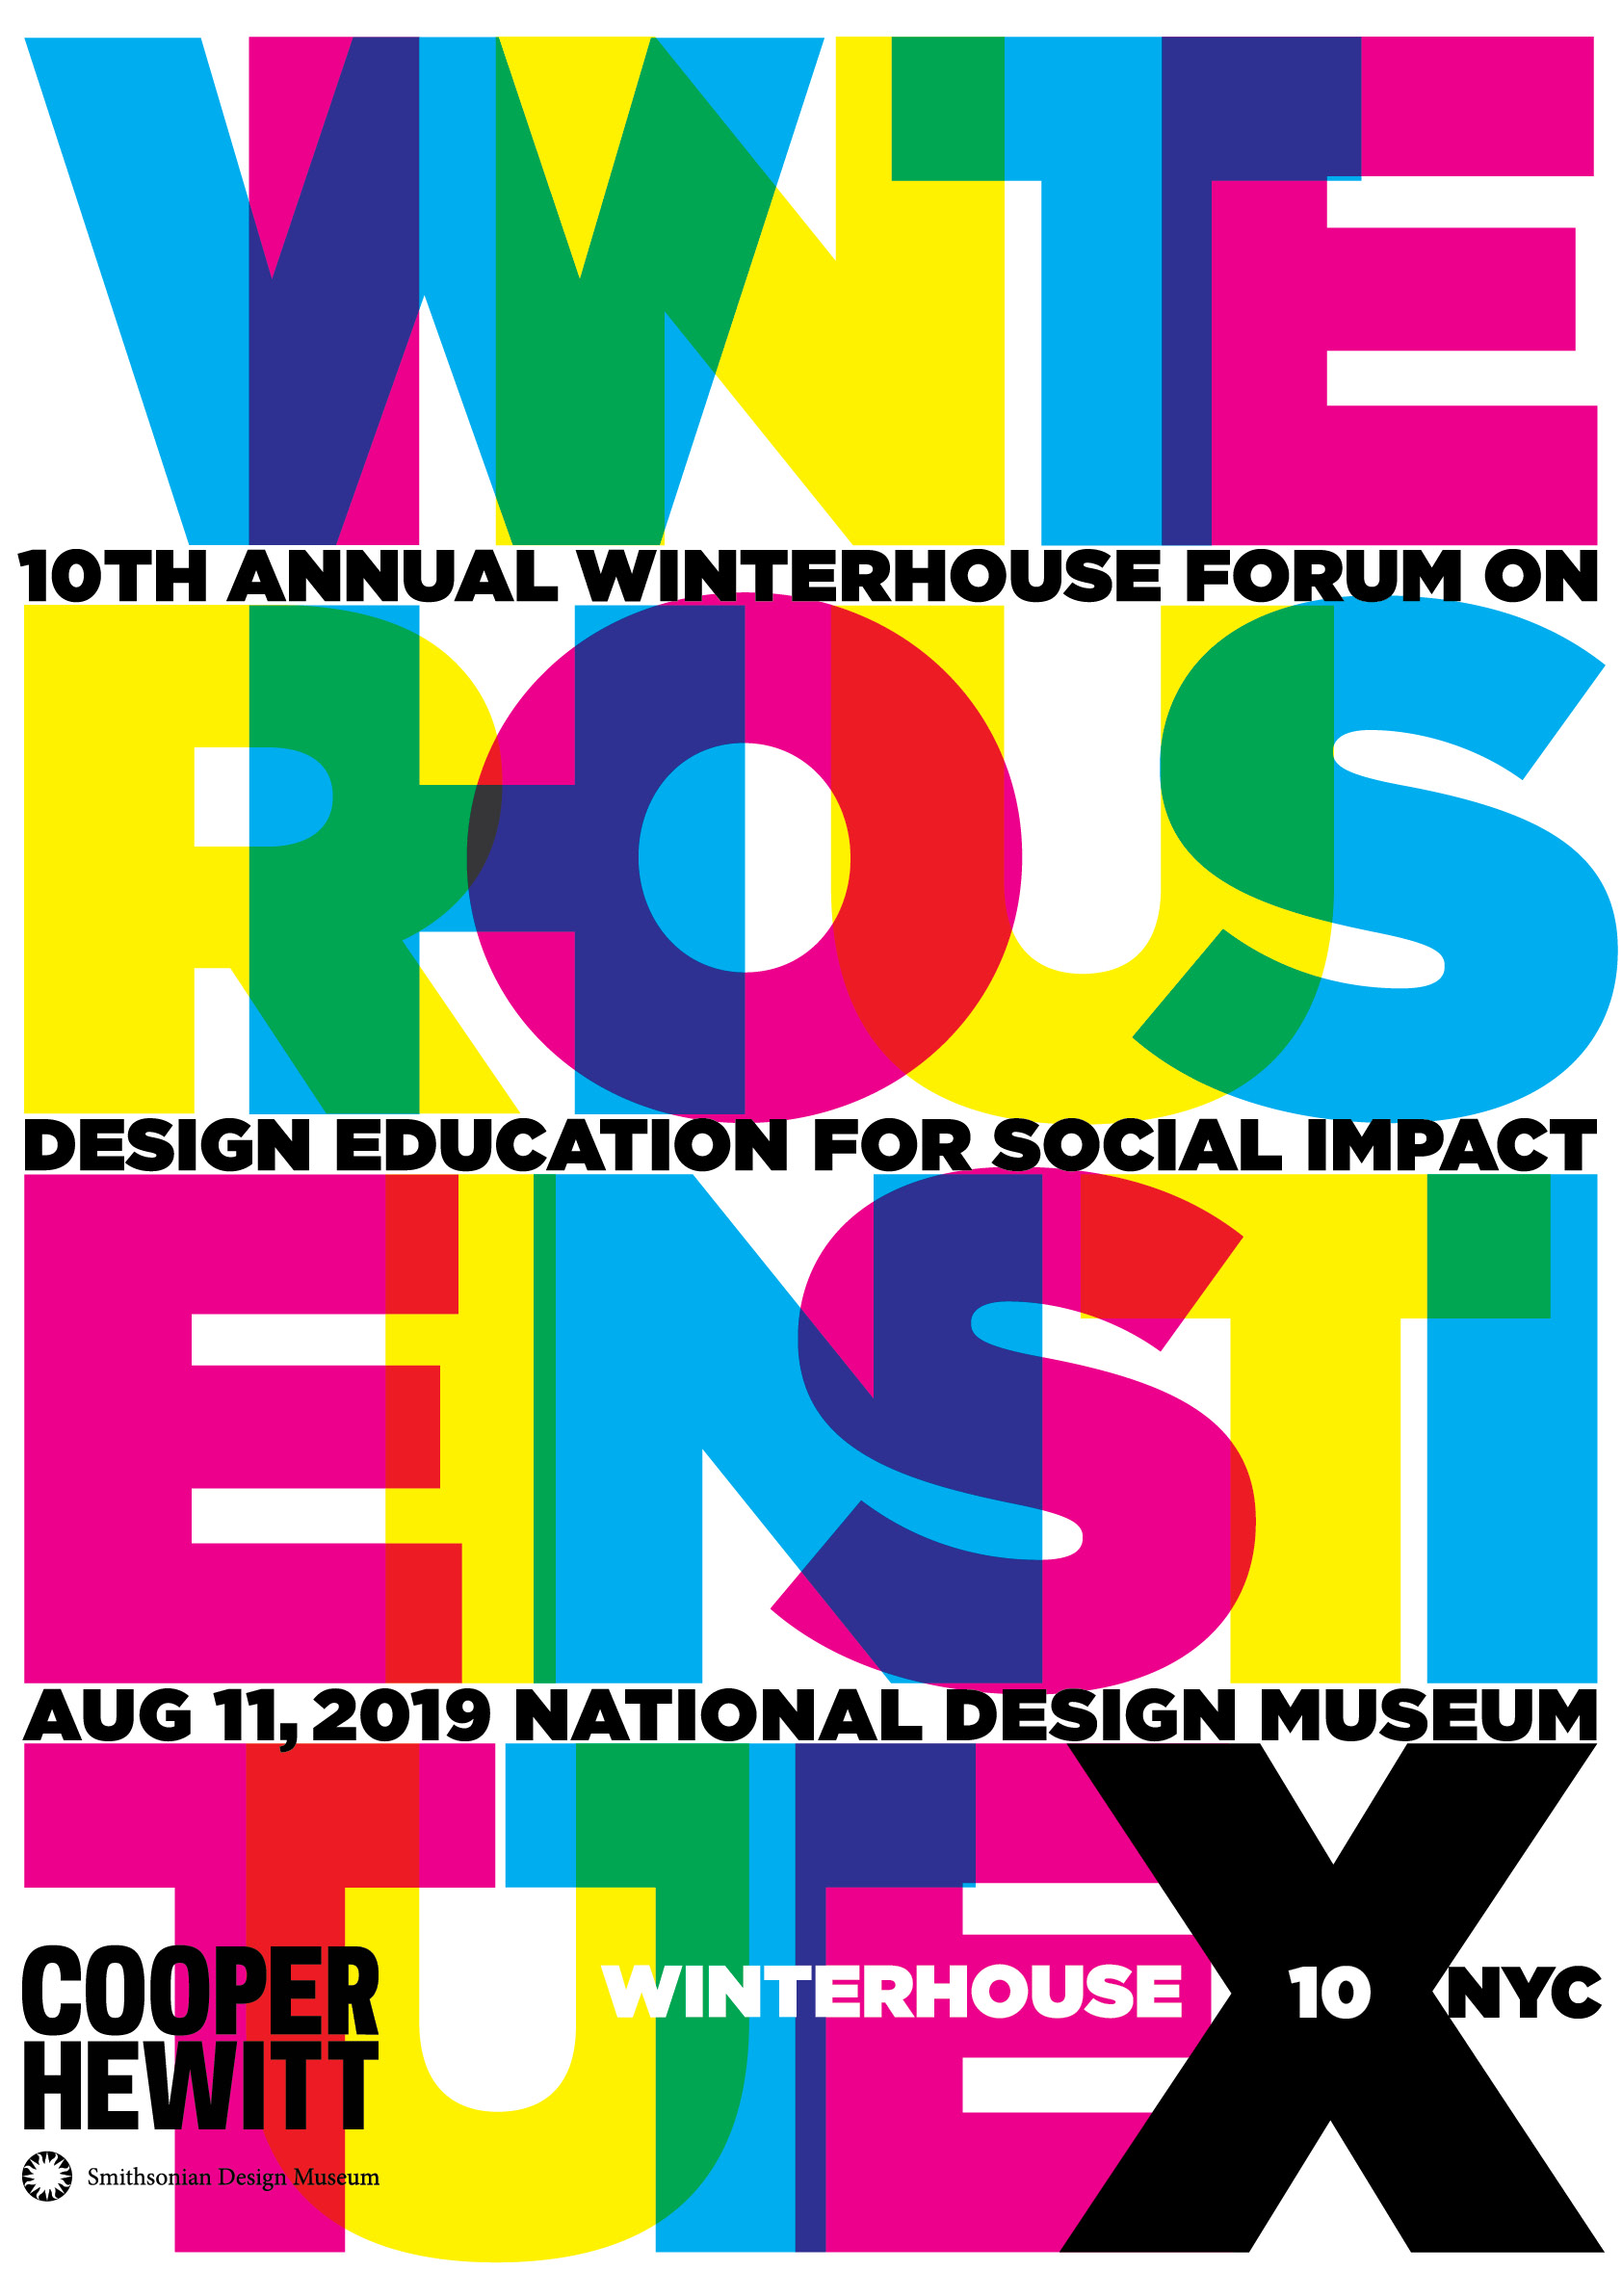 We're excited to celebrate the 10th anniversary of the annual Winterhouse Symposium in 2019 in collaboration with the Cooper Hewitt Smithsonian Design Museum in New York City.